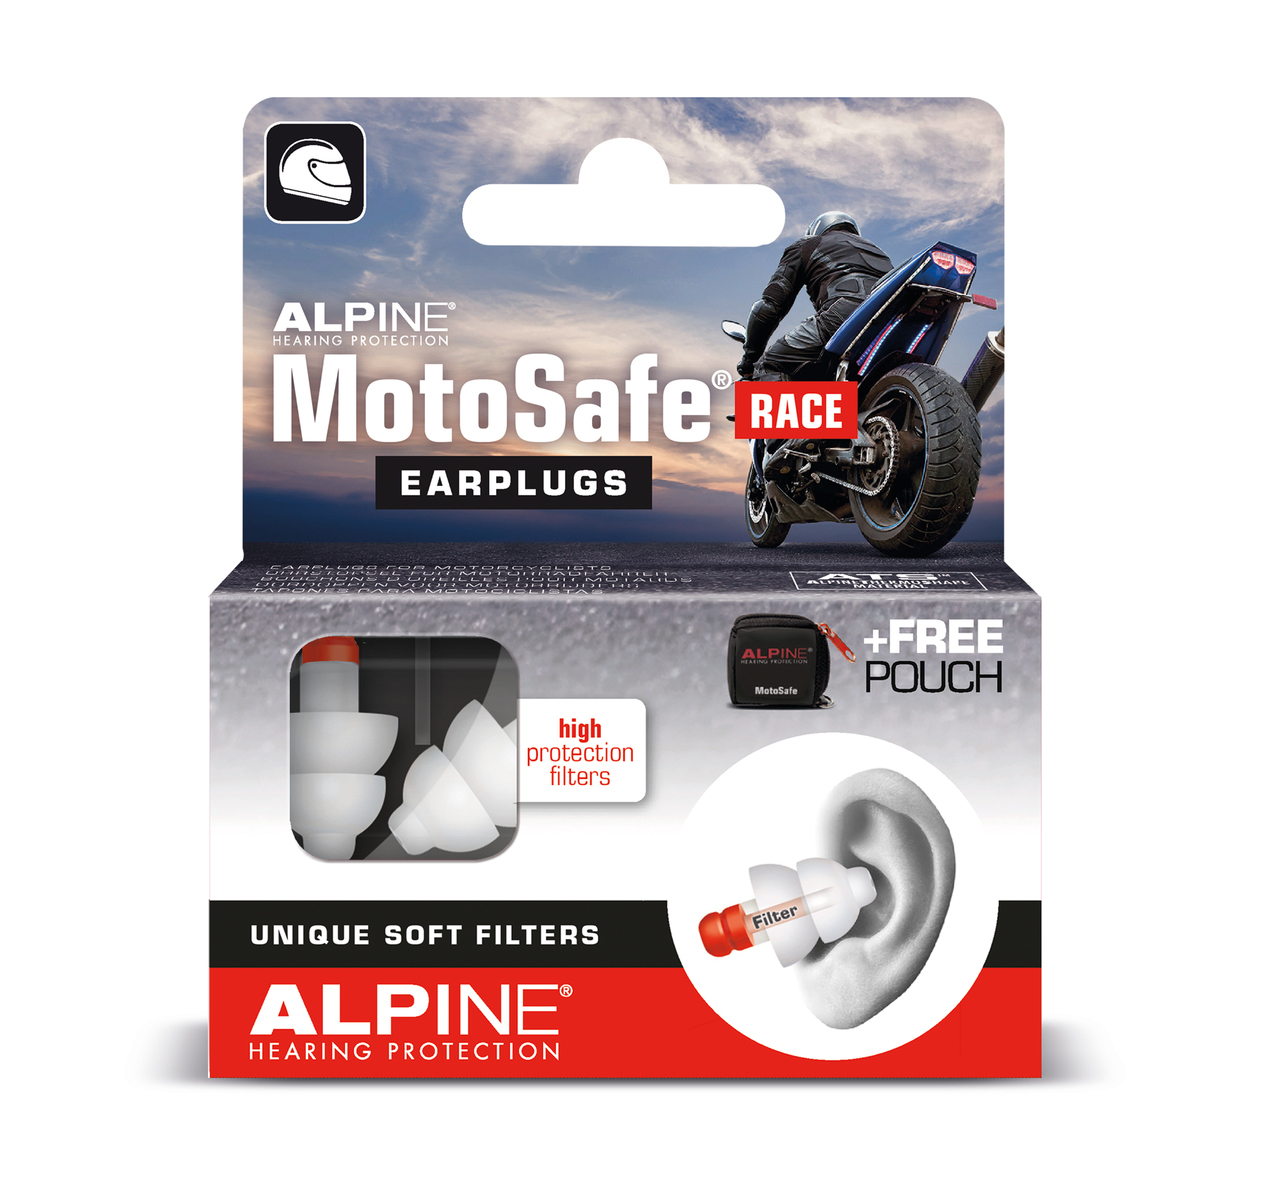 Alpine Motosafe Earplugs For Racing Sleep And Sound